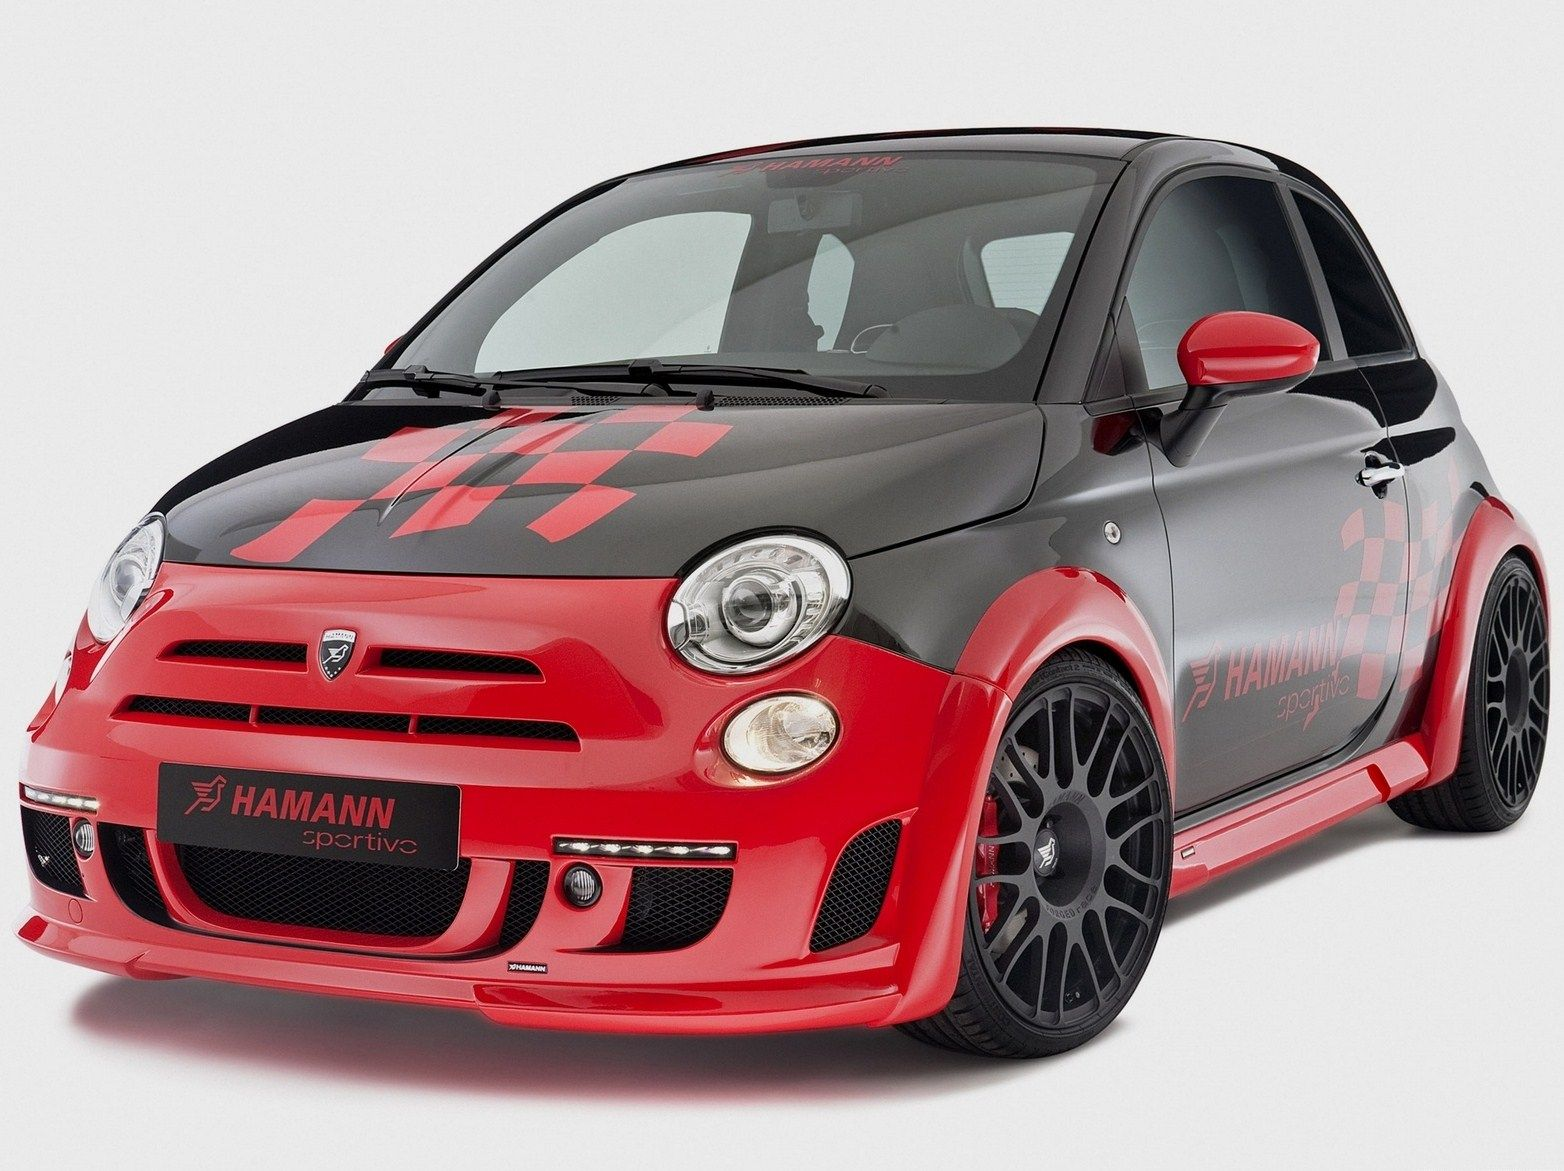 2019 fiat 500 abarth esseesse photo 6 fiat 500 abarth pinterest fiat car guide and fiat. Black Bedroom Furniture Sets. Home Design Ideas